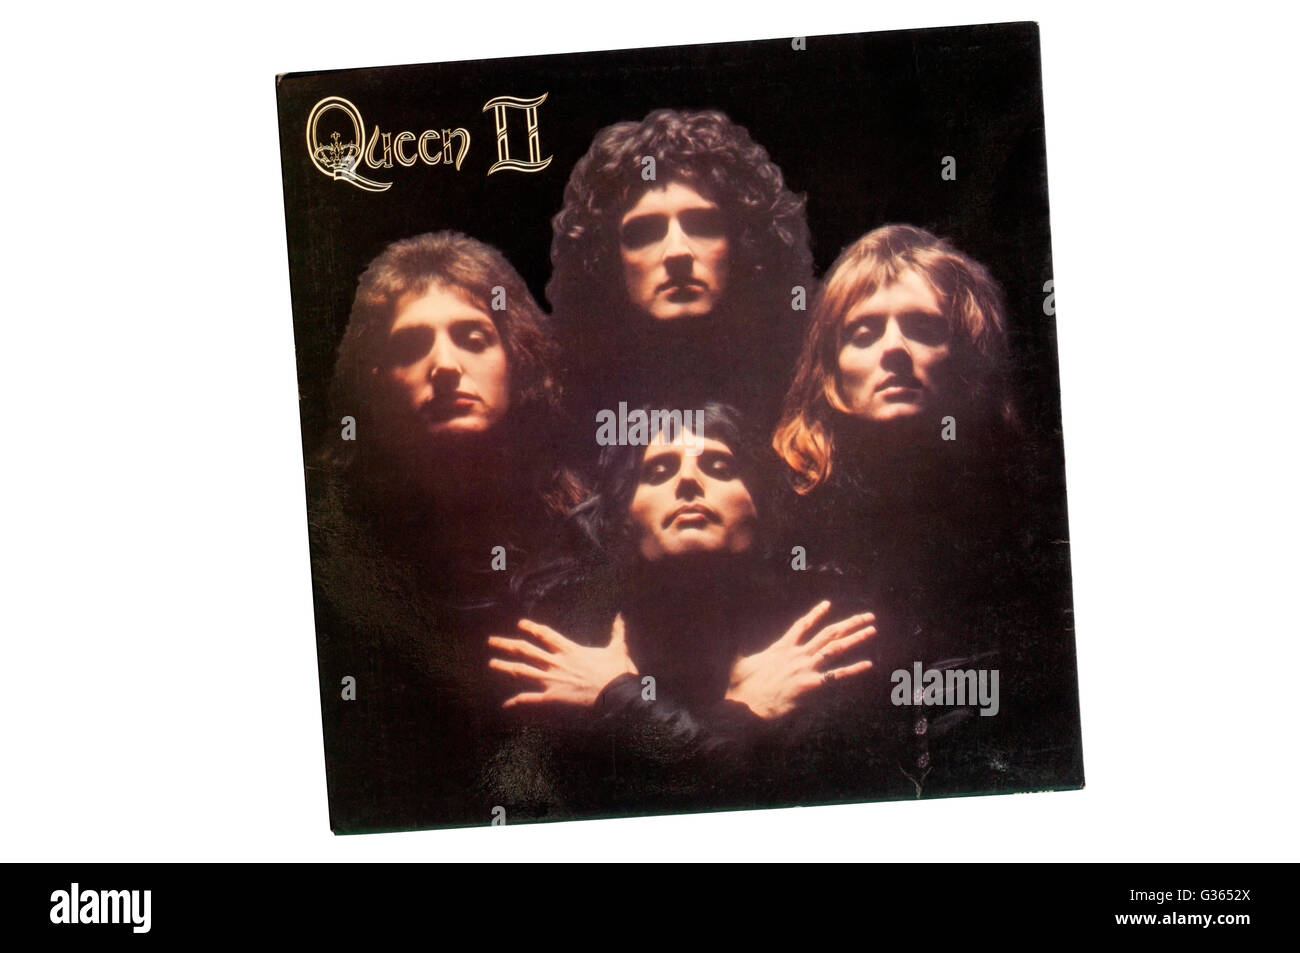 Queen Album Cover Stock Photos & Queen Album Cover Stock